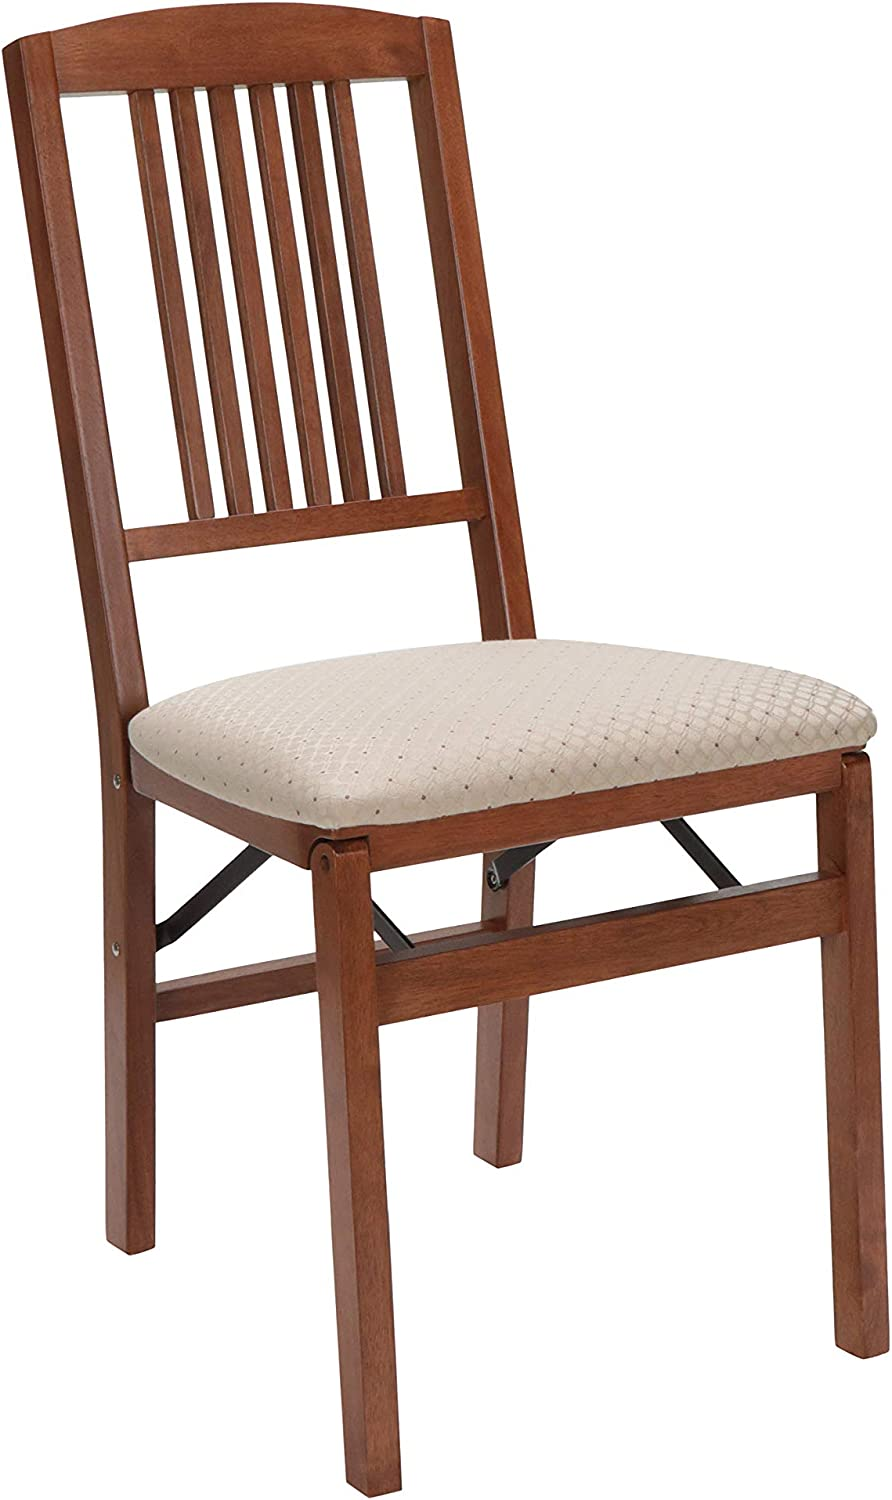 Stakmore Simple Mission Folding Chair Finish, Set of 2, Cherry